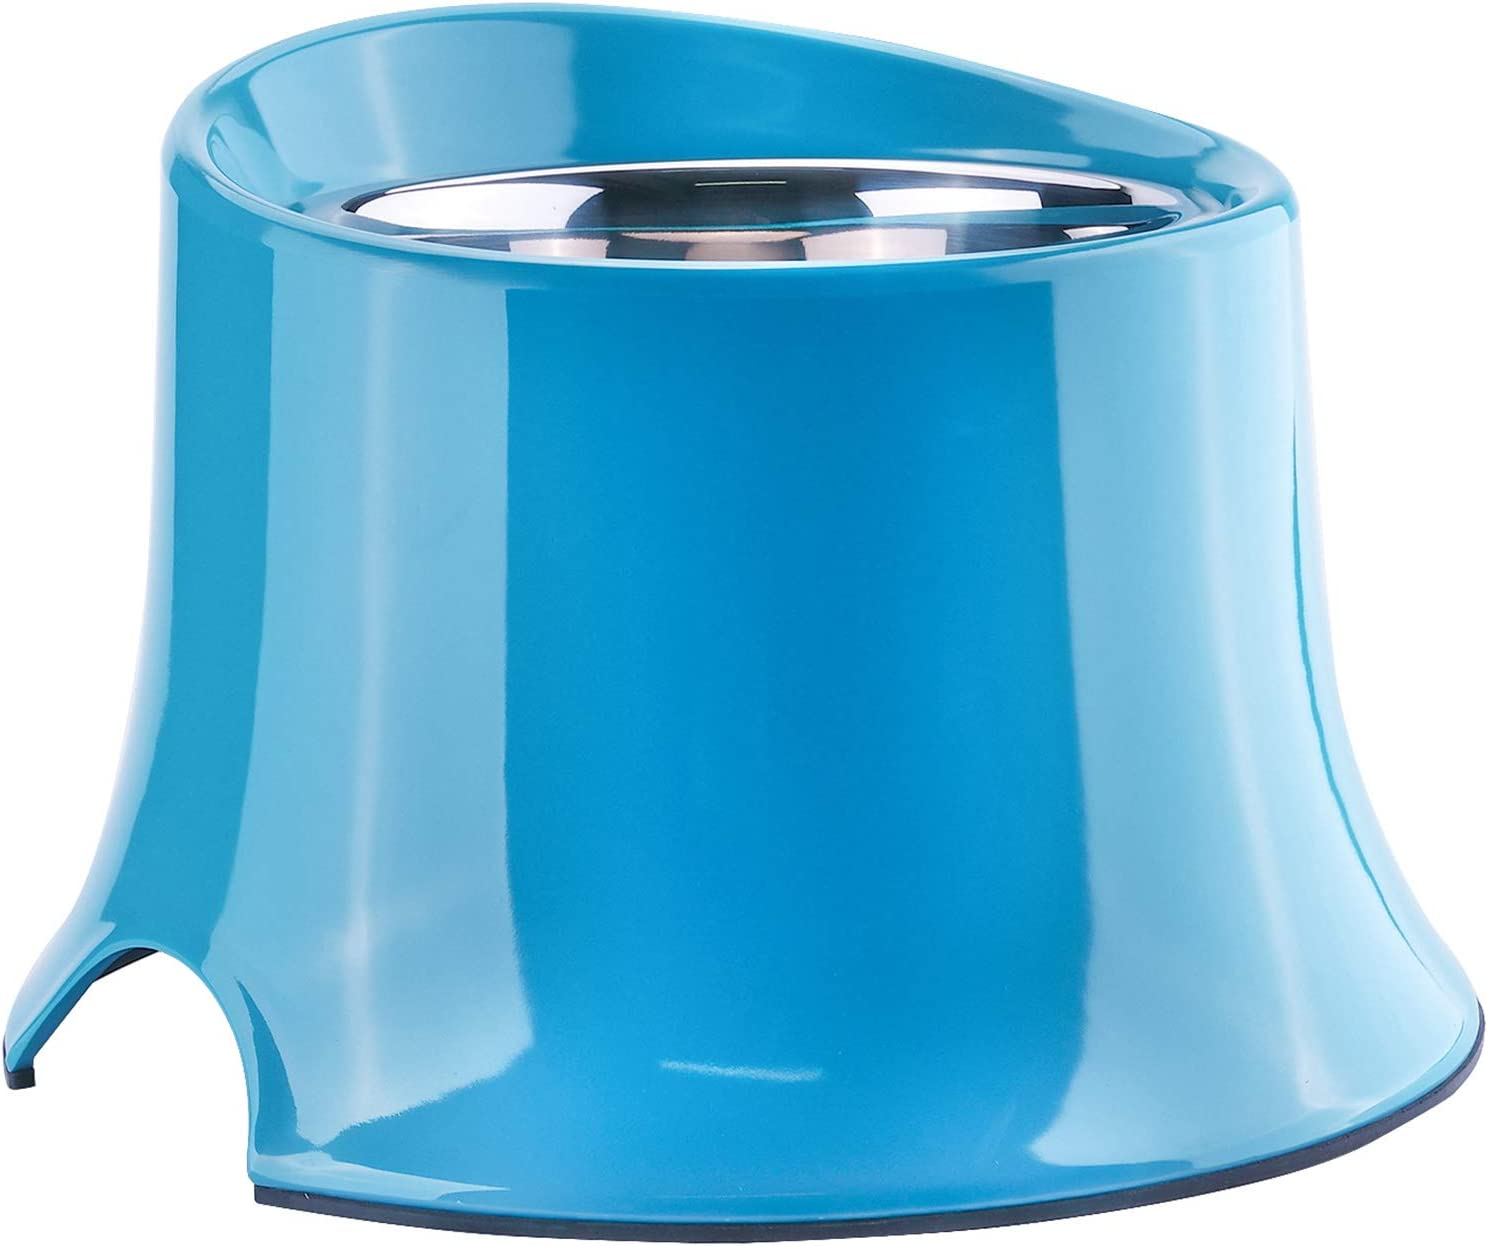 Super Design Elevated Dog Bowl Raised Dog Feeder for Food and Water, Non Spill Edges & Non Skid Sturdy Melamine Stand, Reduce Neck Stress, Less Regurgitating and Vomiting 1 Cup Blue